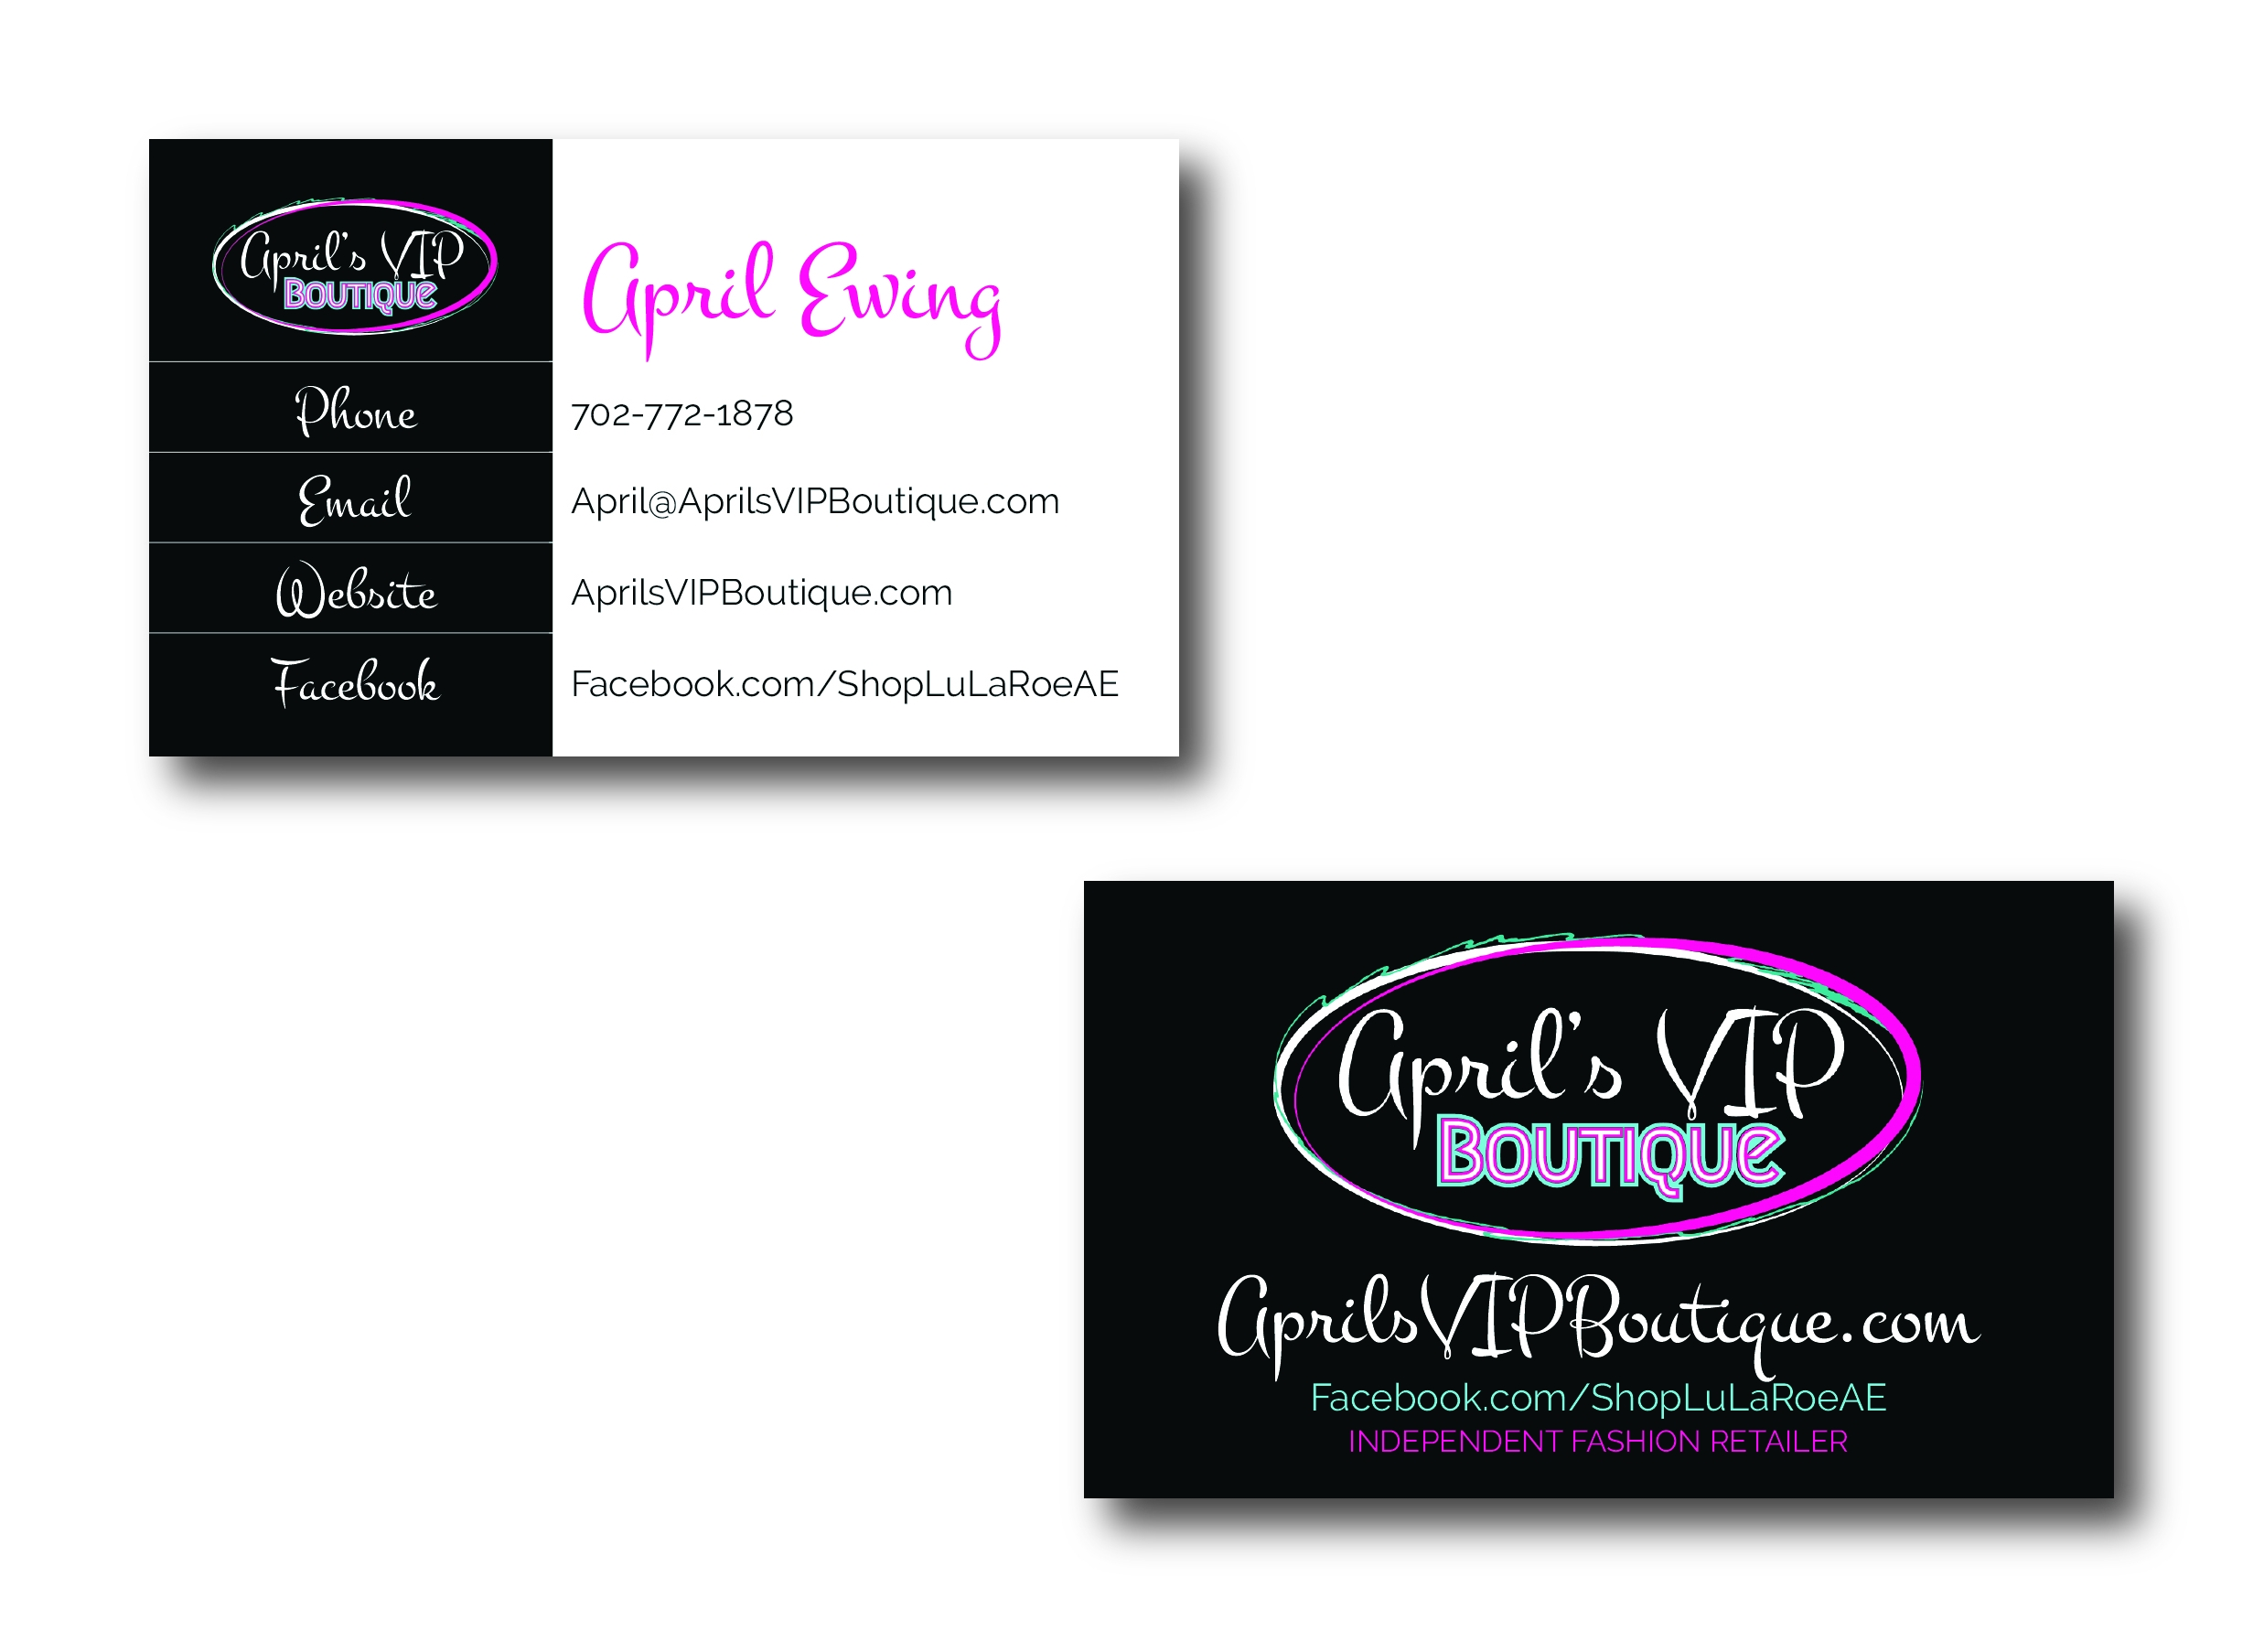 Graphic design custom business card design by tracy technologies view larger image reheart